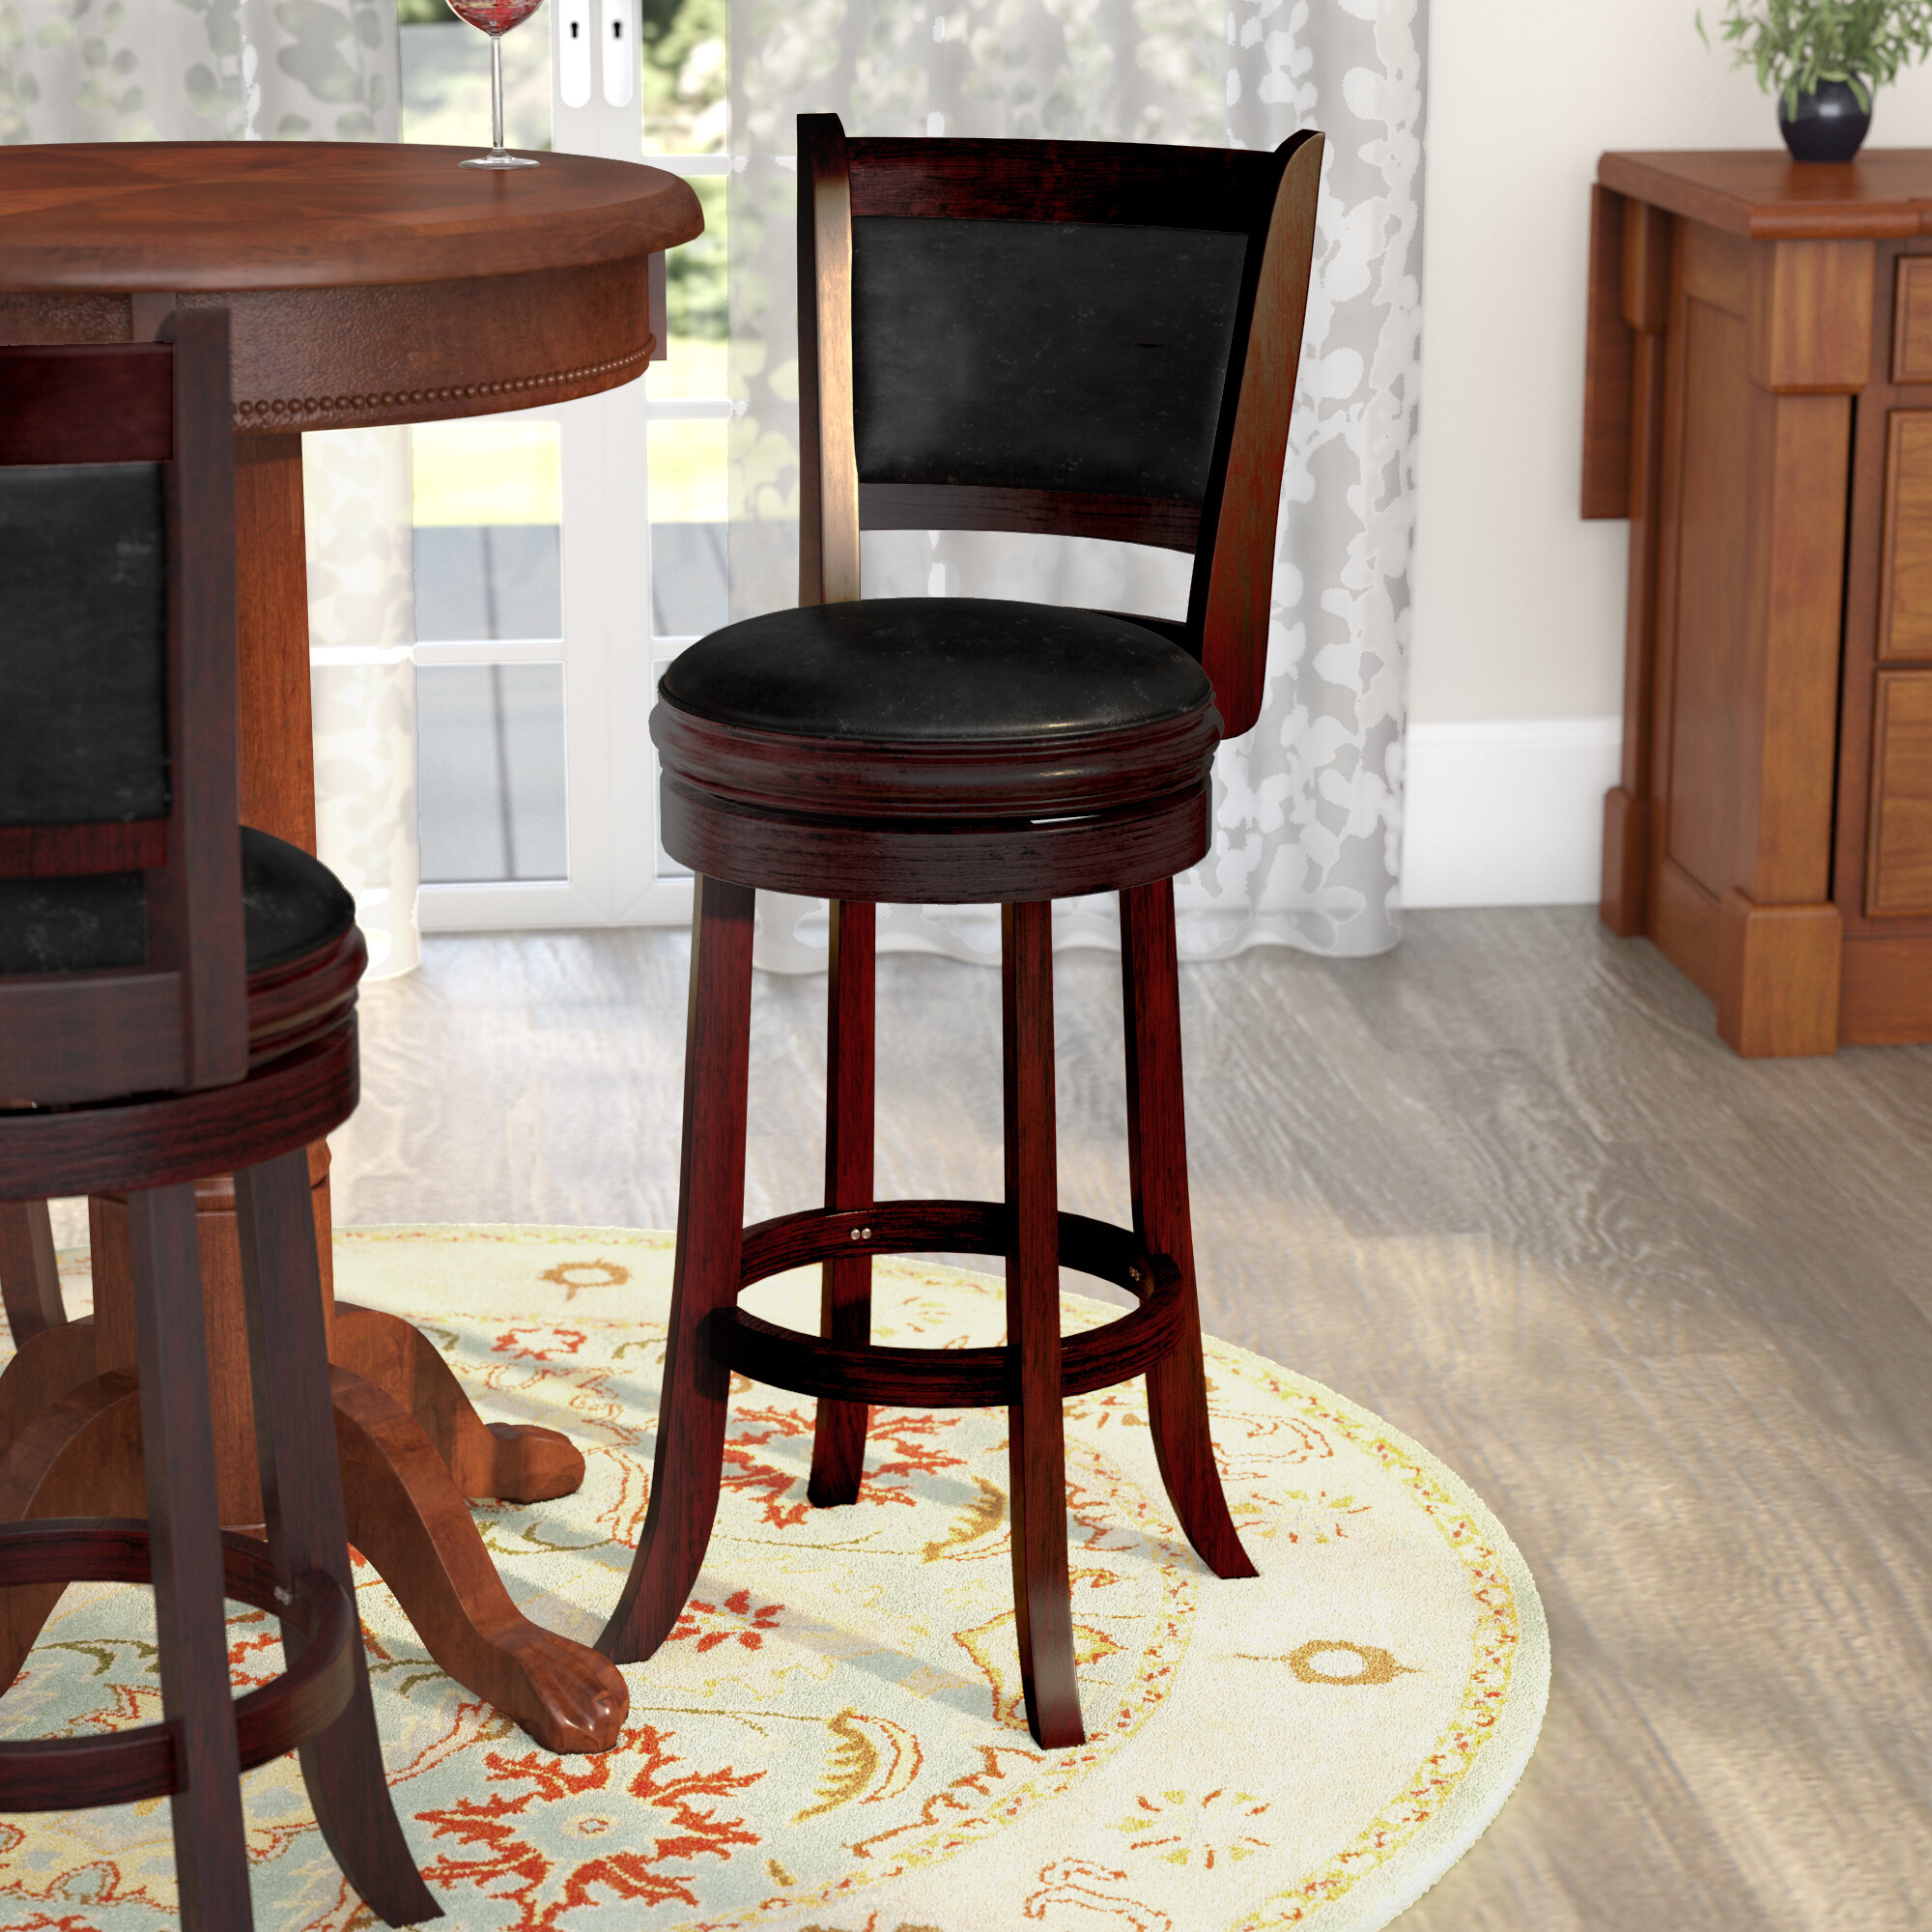 home gabriella for pub overstock stool garden product inch bar today of living free set shipping stools simple sale used